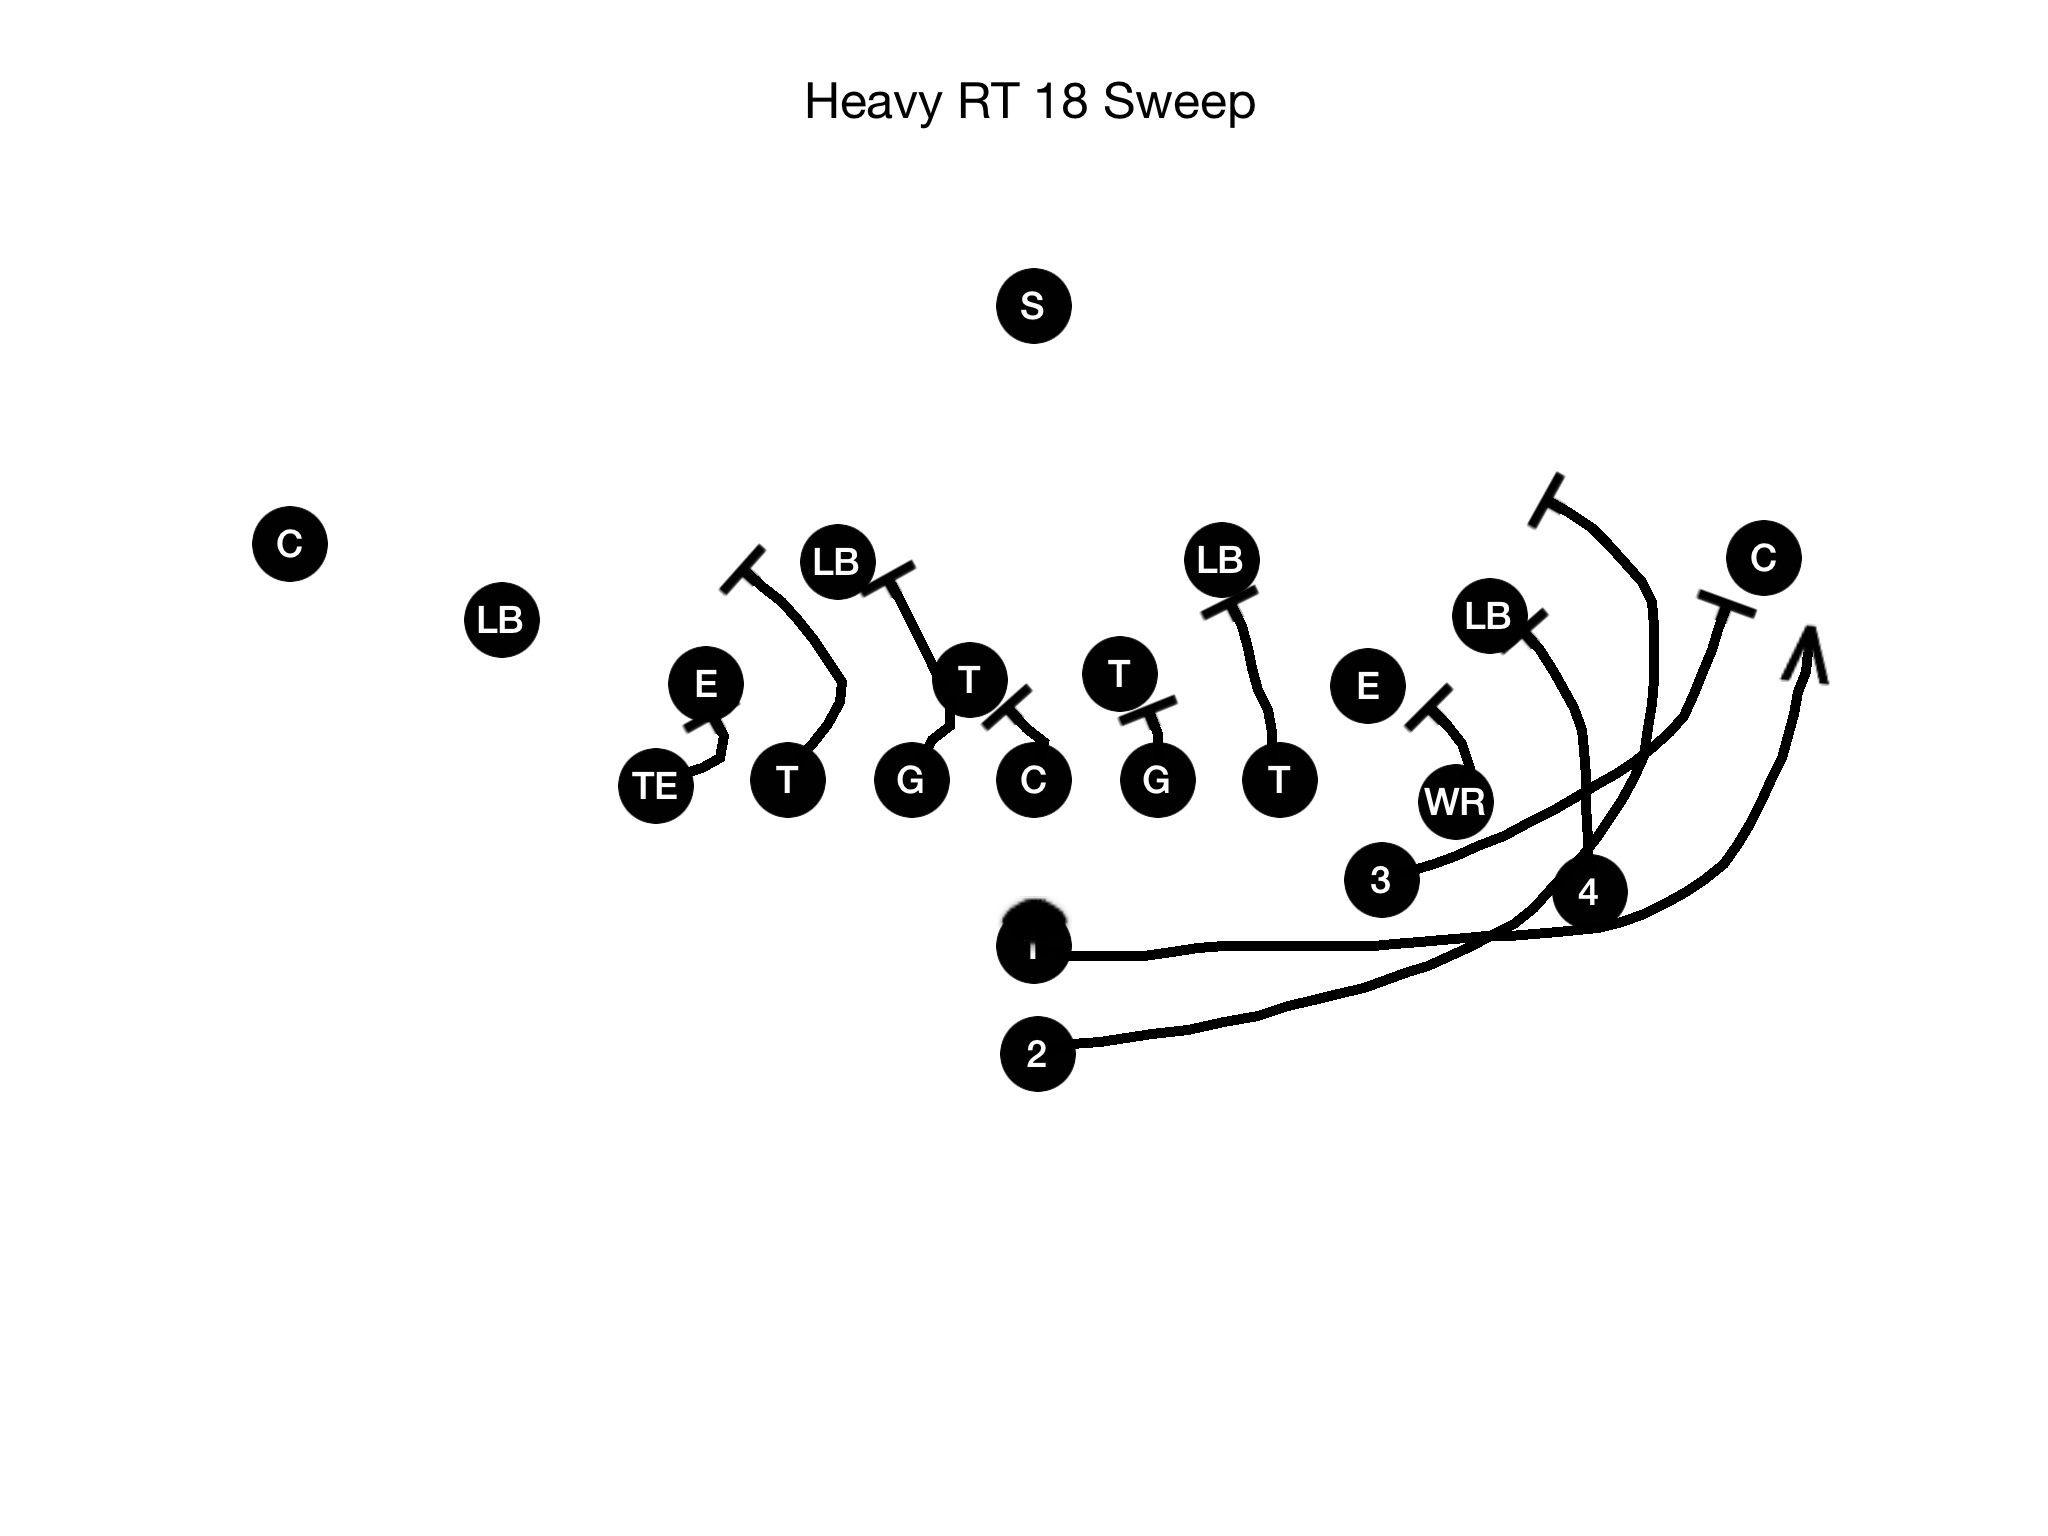 Pistol Quarterback Sweep Play